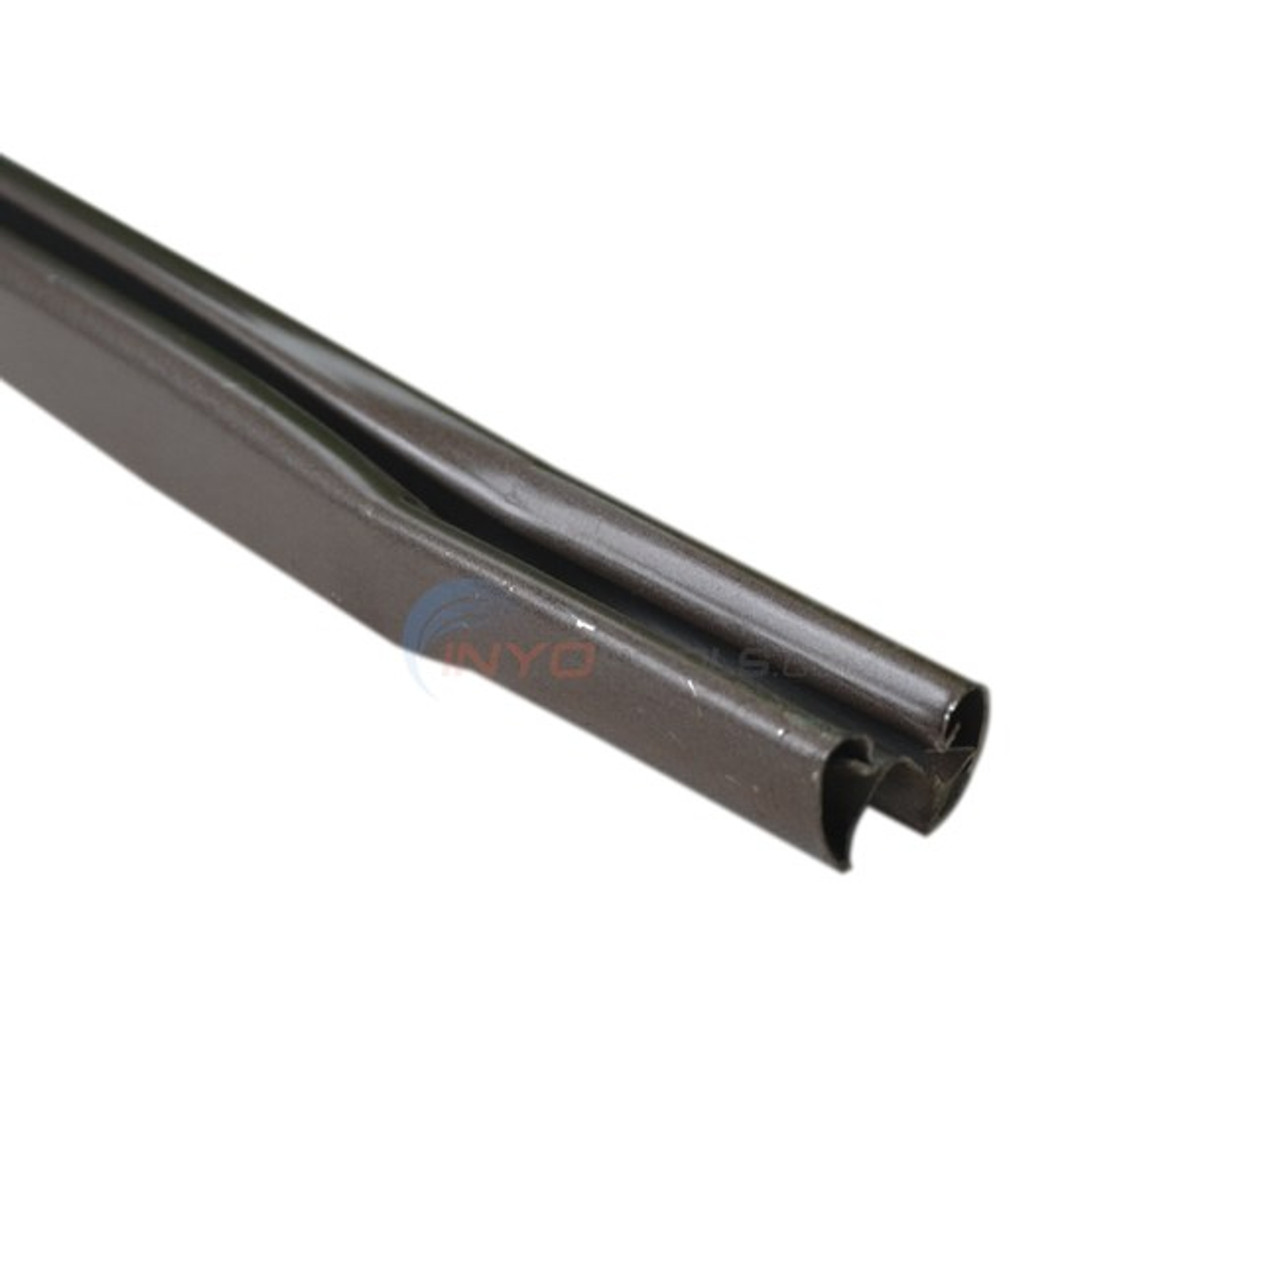 Wilbar Steel Stabilizer Bars for Round Pools 15' - 33'